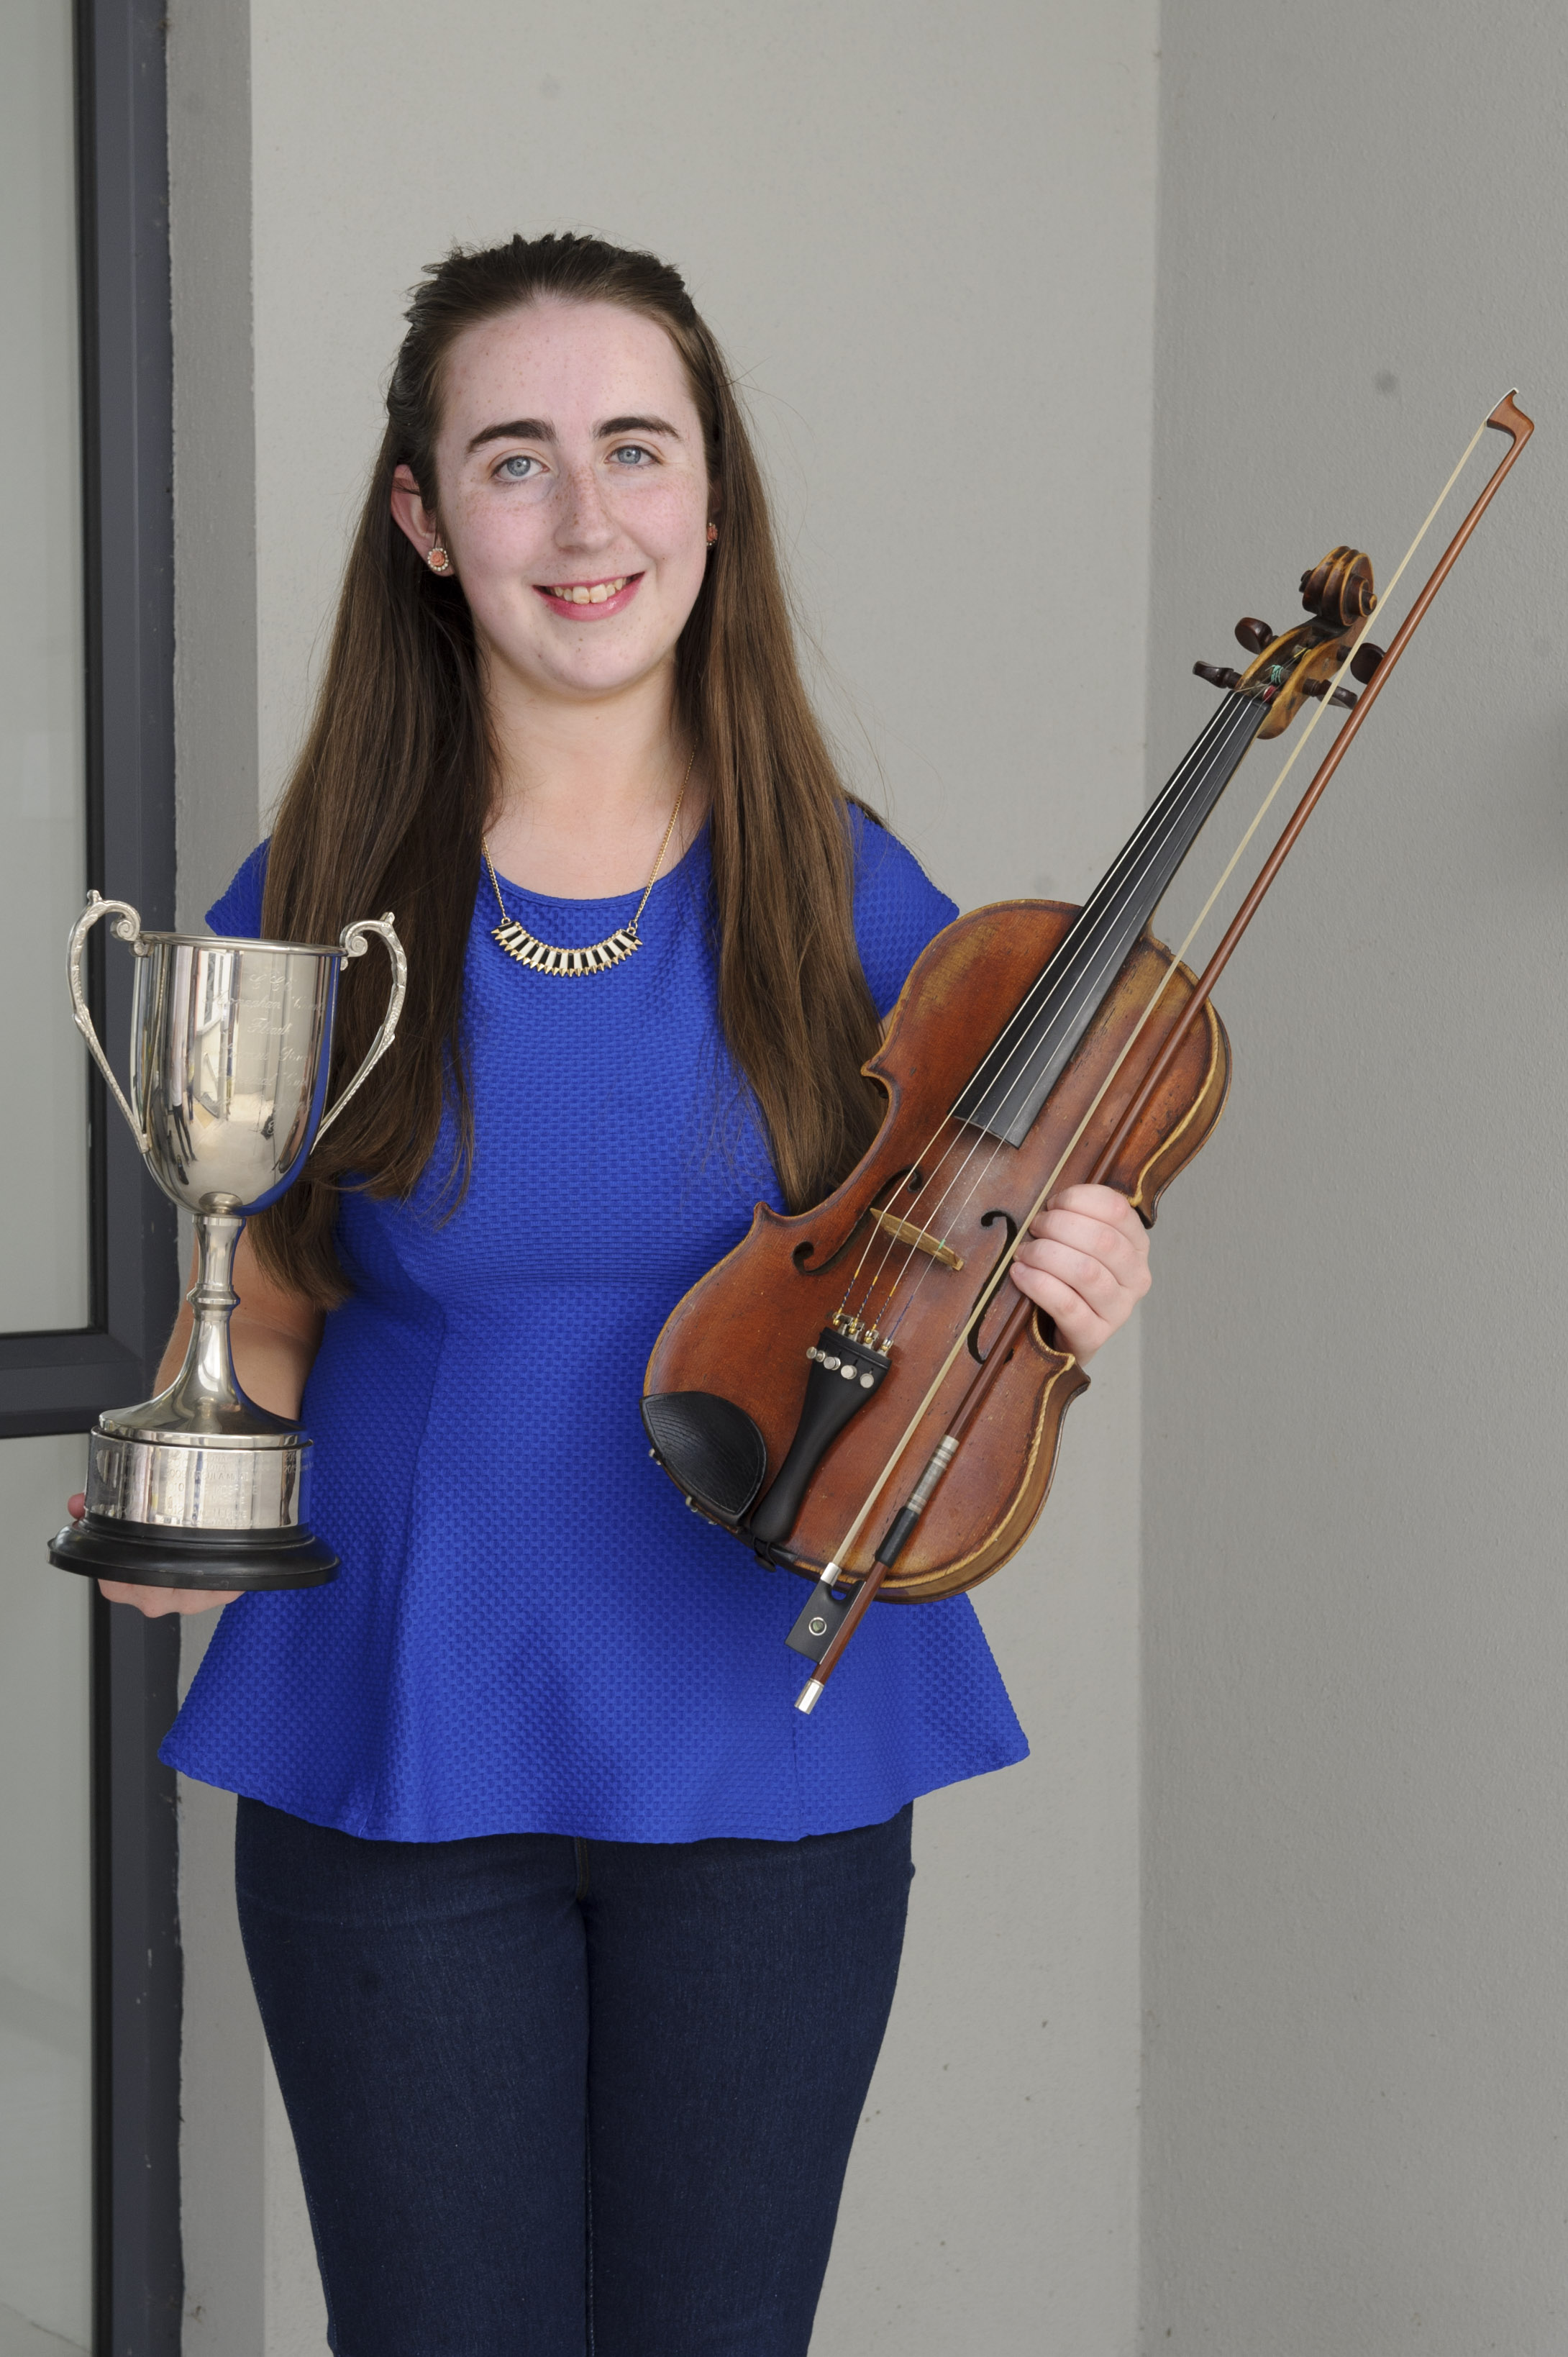 Shauna Lappin, Éamonn Ó Muiri CCE, who was the winner of the U-18 Fiddle Competition with her cup. Shauna was also 2nd in the Newly Composed Music competition. ©Rory Geary/The Northern Standard